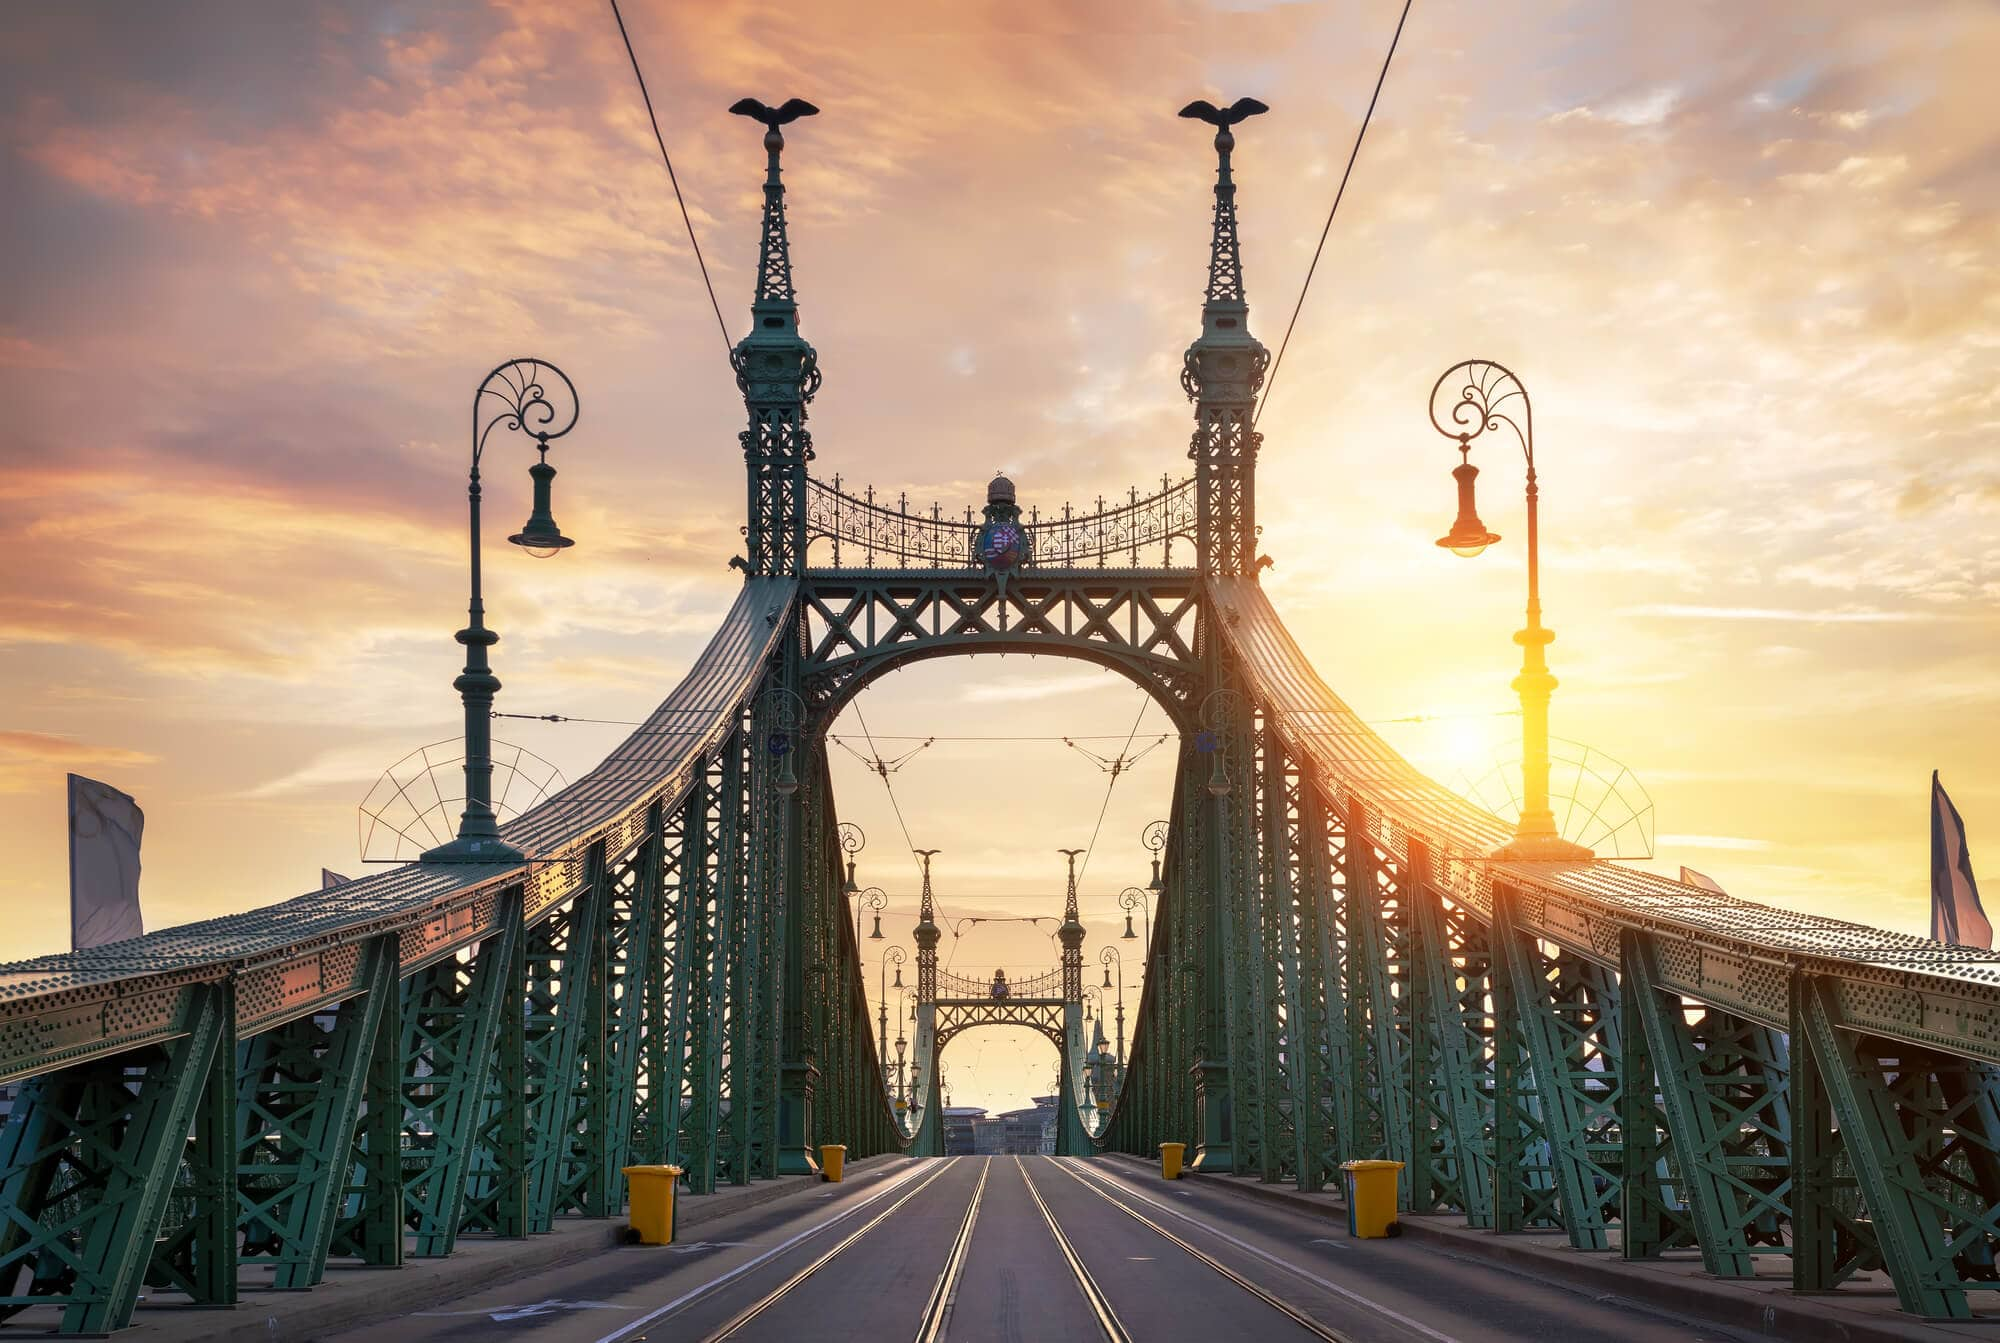 Budapest Instagram photo guide - Liberty Bridge at sunset